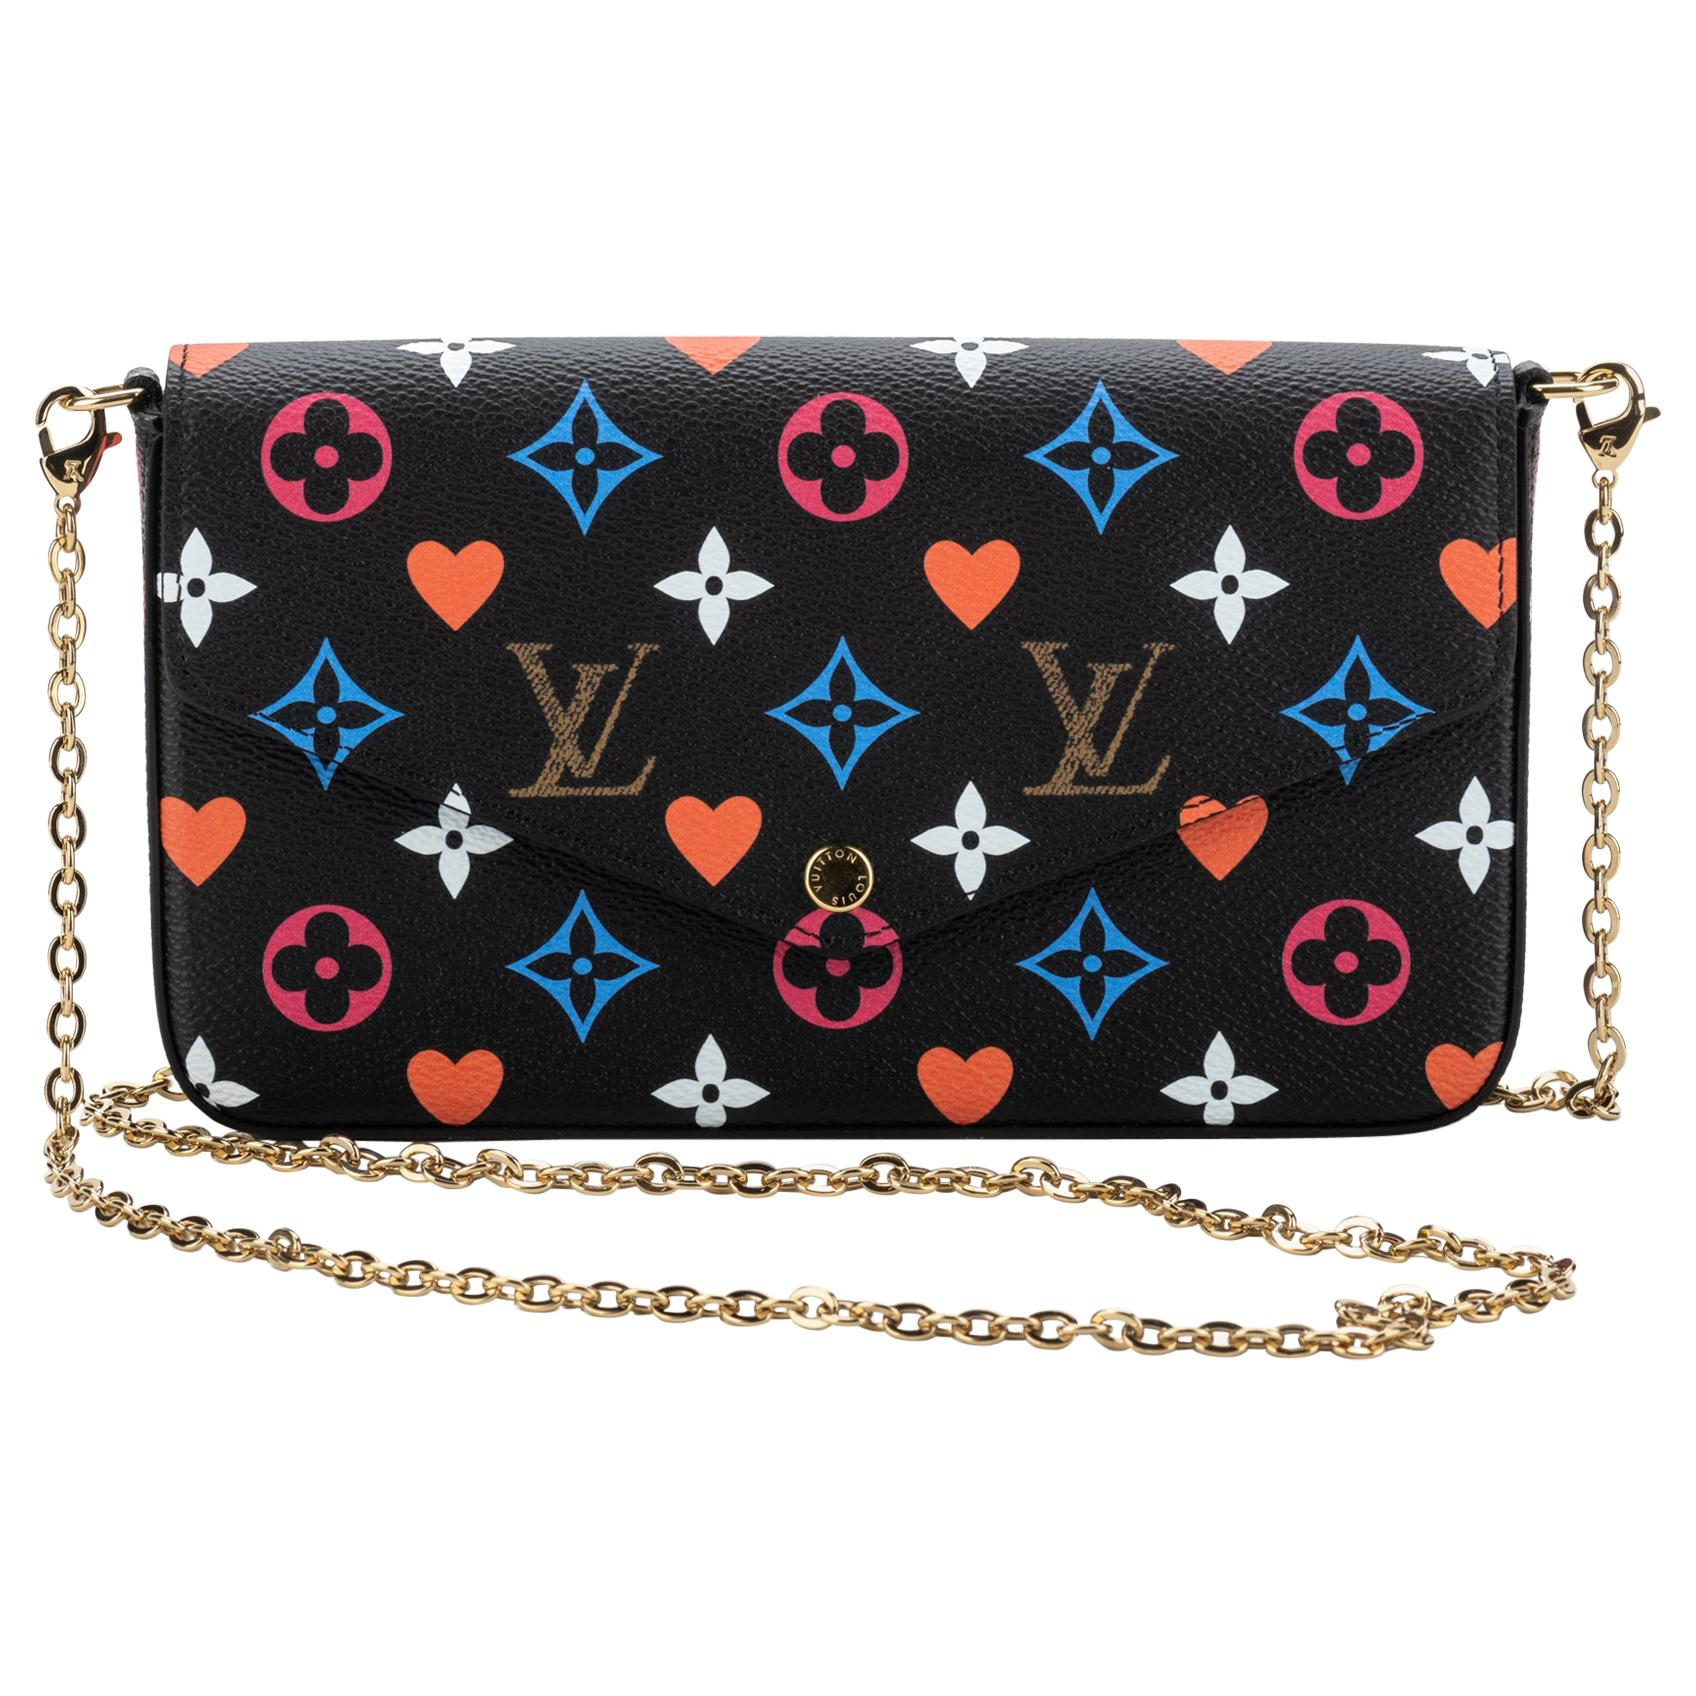 New Louis Vuitton Cards Limited Edition Black Felicie Bag